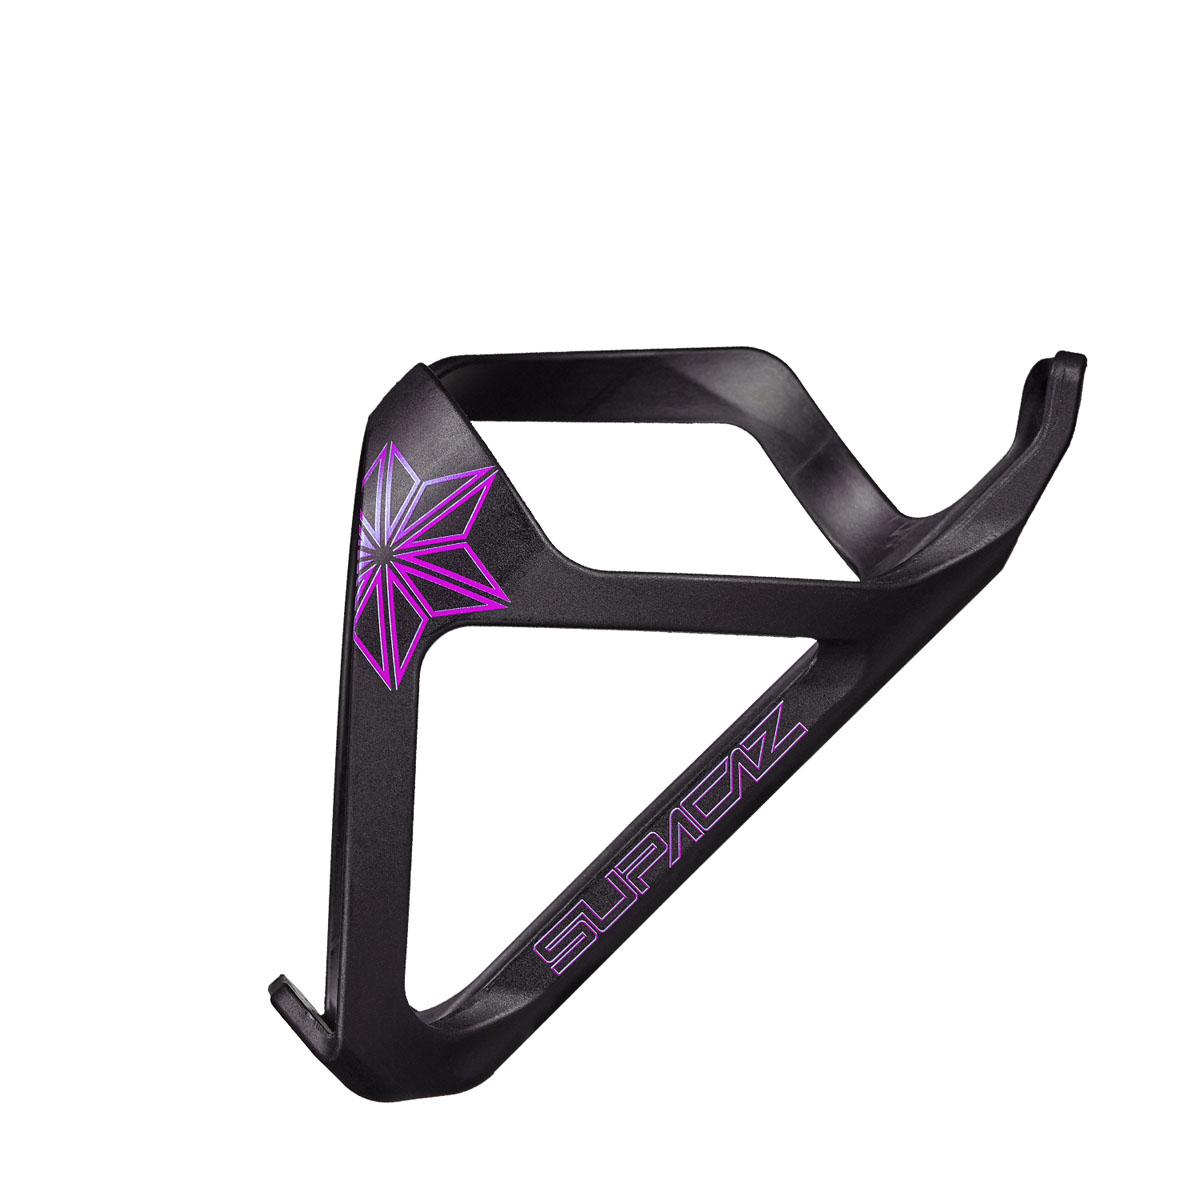 Supacaz Tron Poly Bicycle Bottle Cage